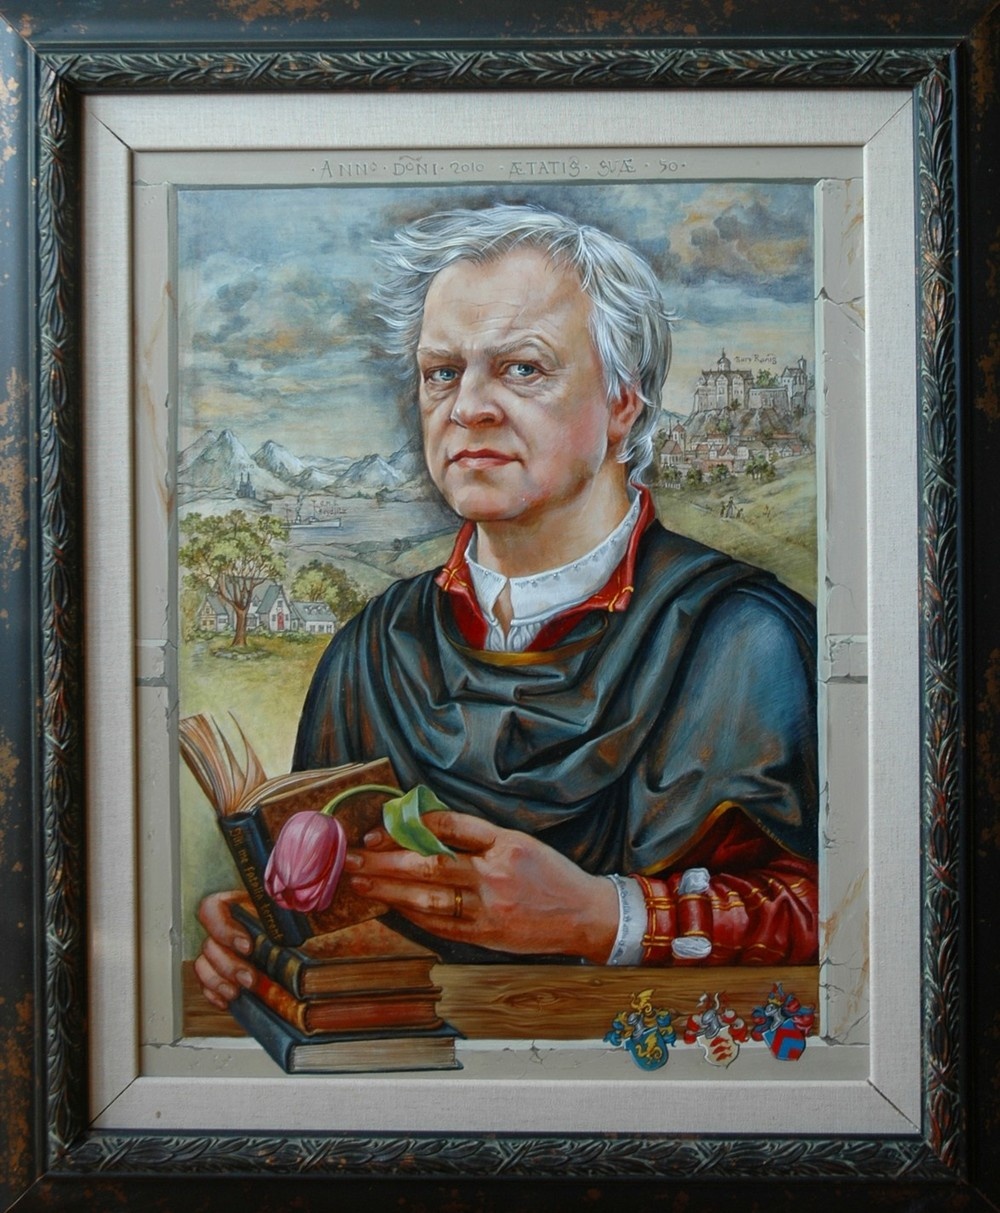 THIRD PLACE - Christoph of Köln (2012) | From the series Portraits | Tanya Larin | Oil on board | 16x20"